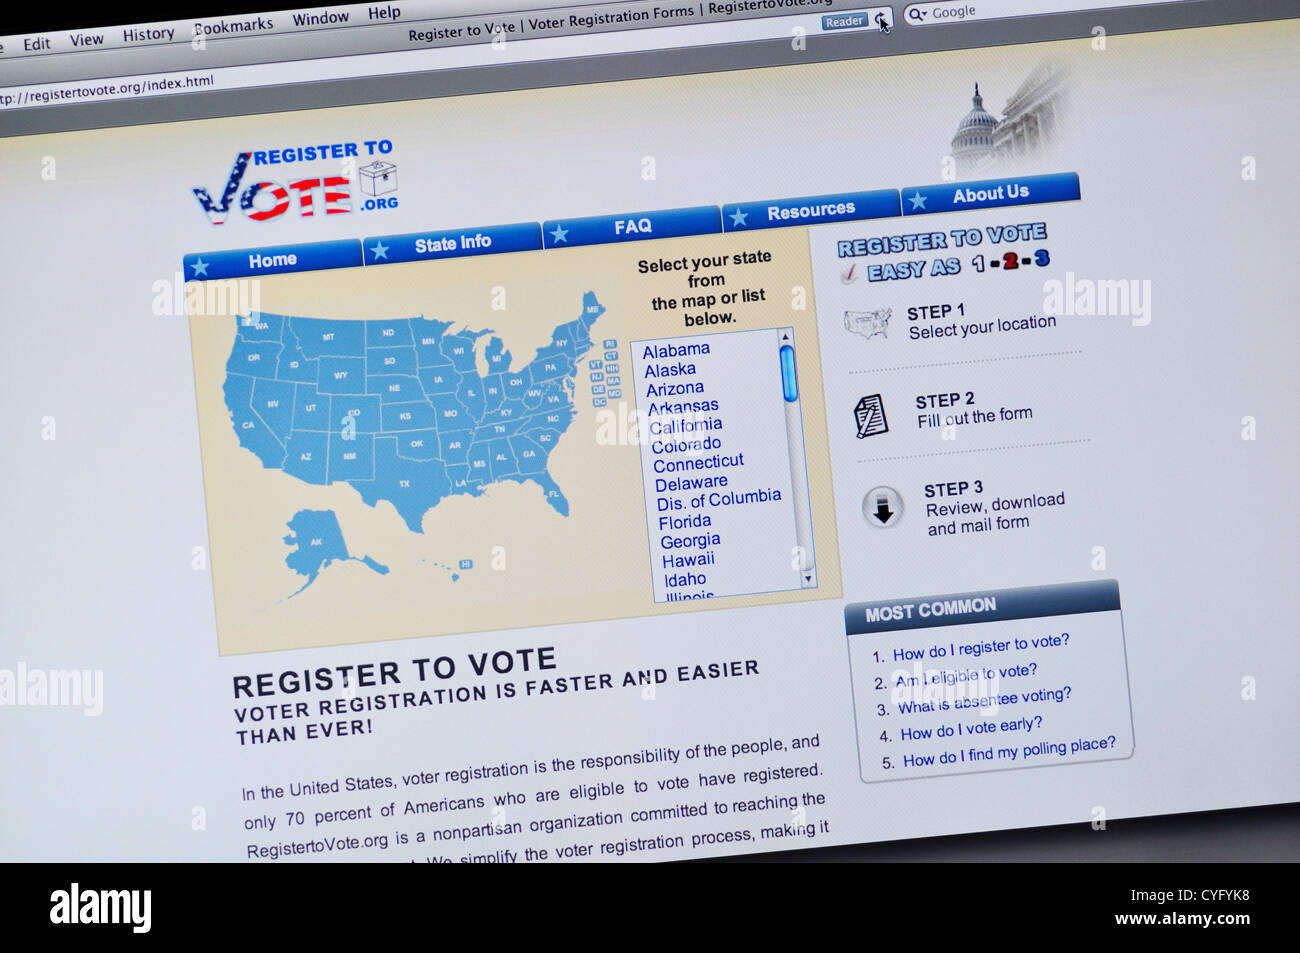 USA. 4th November, 2012. Register to Vote website - US presidential elections registration online - Stock Image